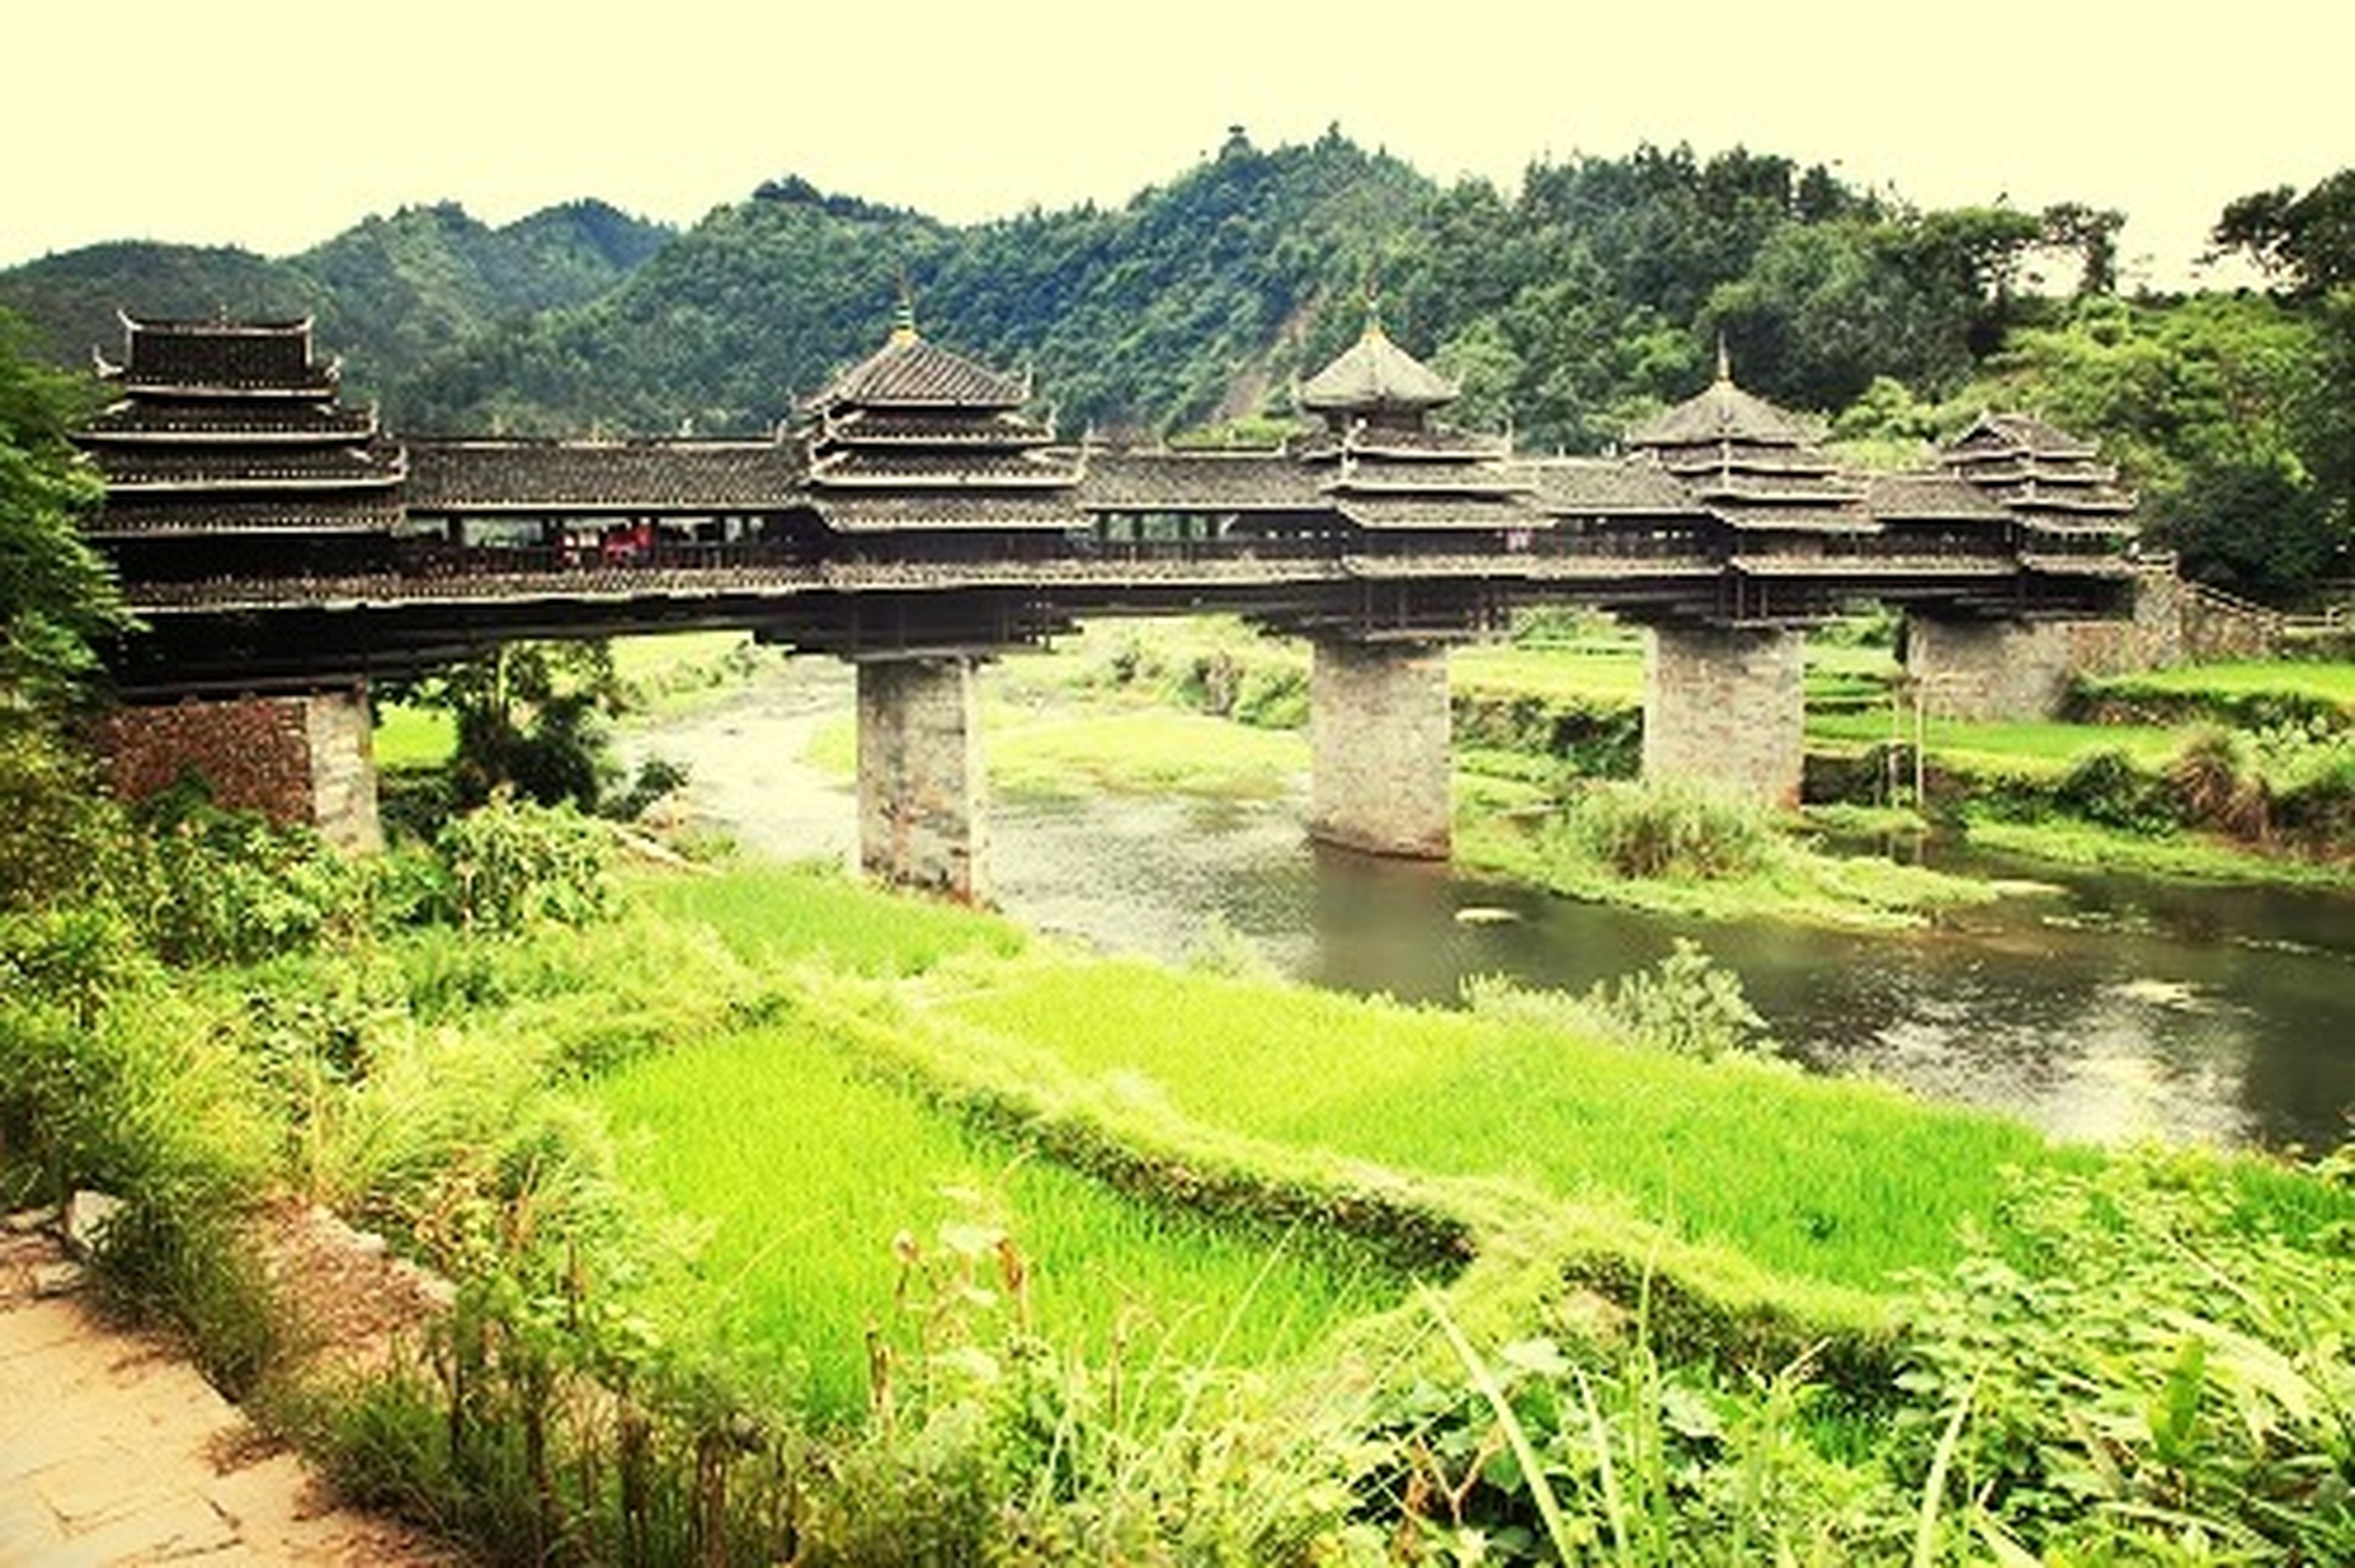 built structure, architecture, water, grass, bridge - man made structure, mountain, river, connection, history, building exterior, tree, old ruin, tranquility, travel destinations, nature, green color, clear sky, scenics, travel, plant